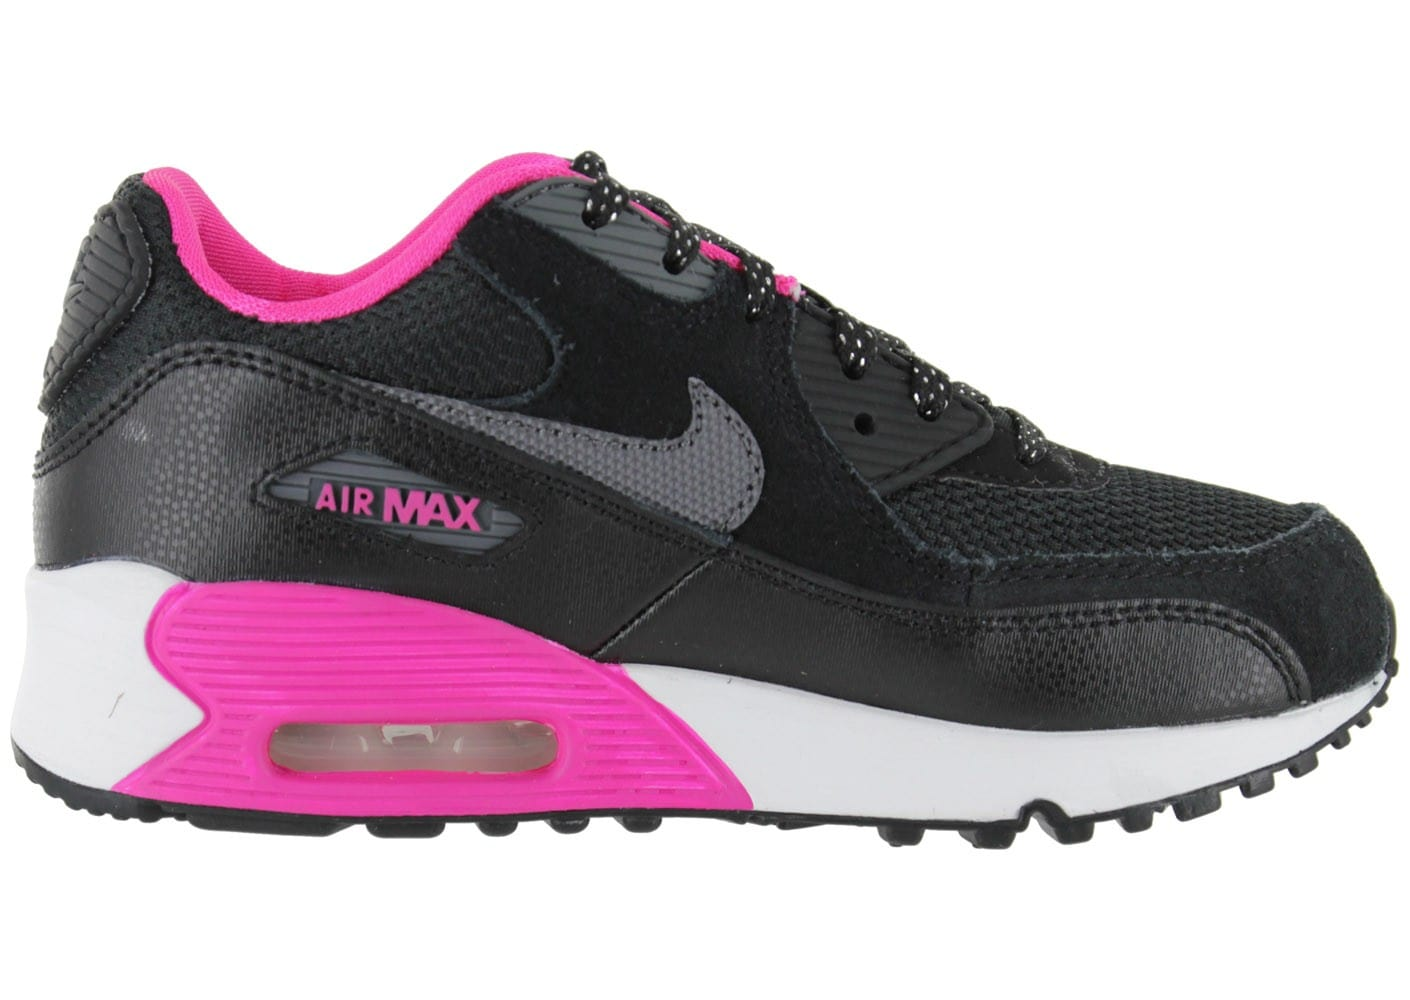 nike air max 90 enfant noire chaussures chaussures chausport. Black Bedroom Furniture Sets. Home Design Ideas